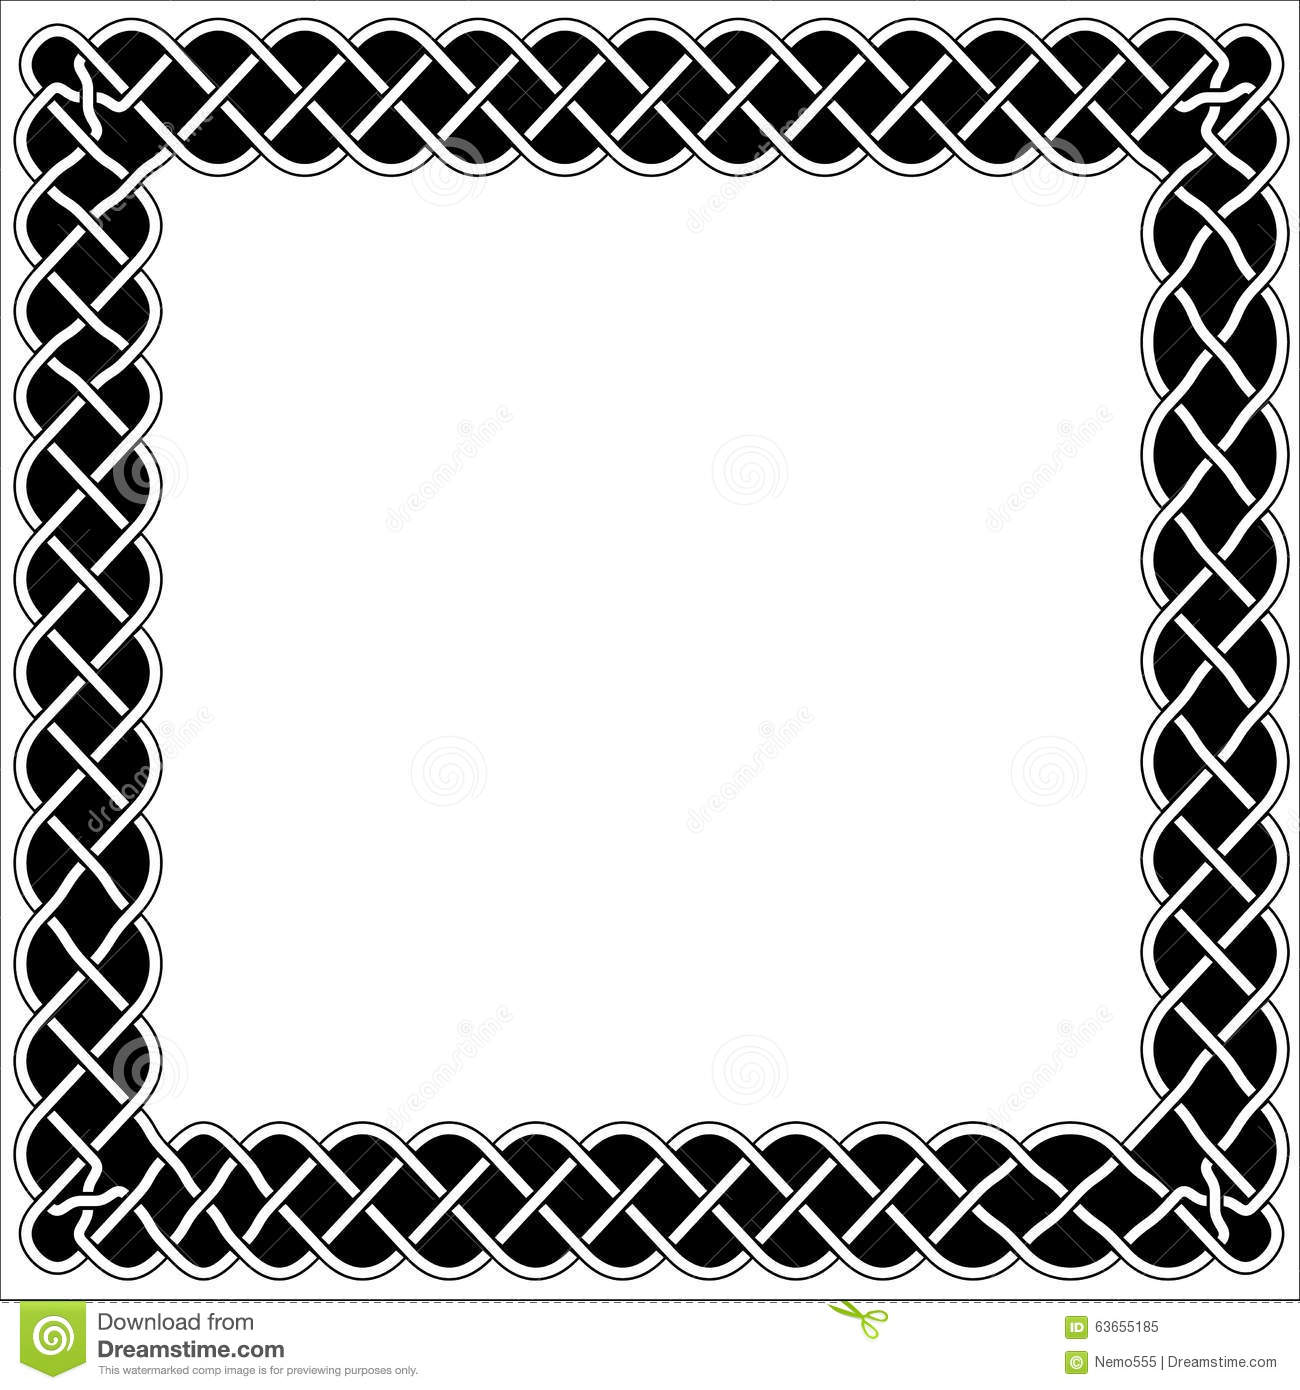 Frames, borders and black and white Celtic or Arabic style with knots ...